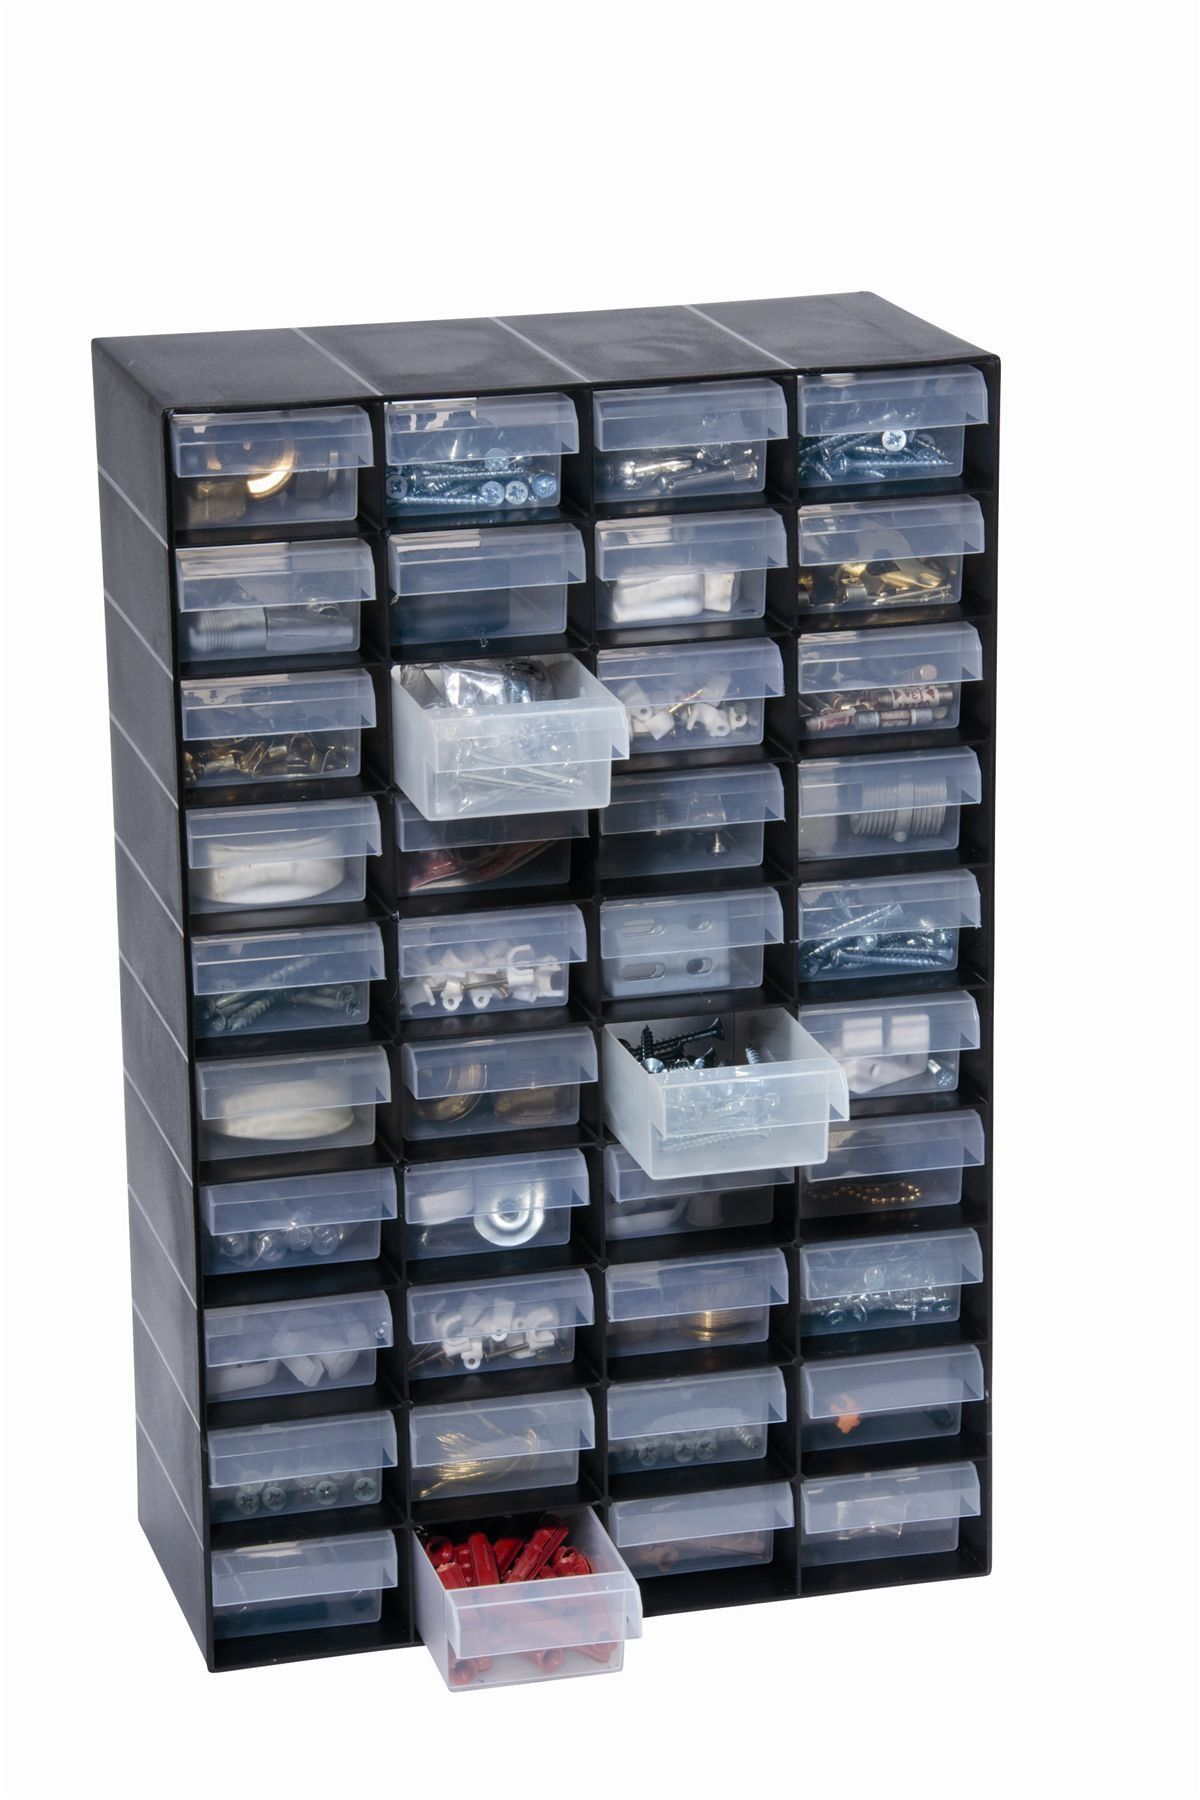 40 Multi Drawer Plastic Storage Cabinet For Home Garage Or